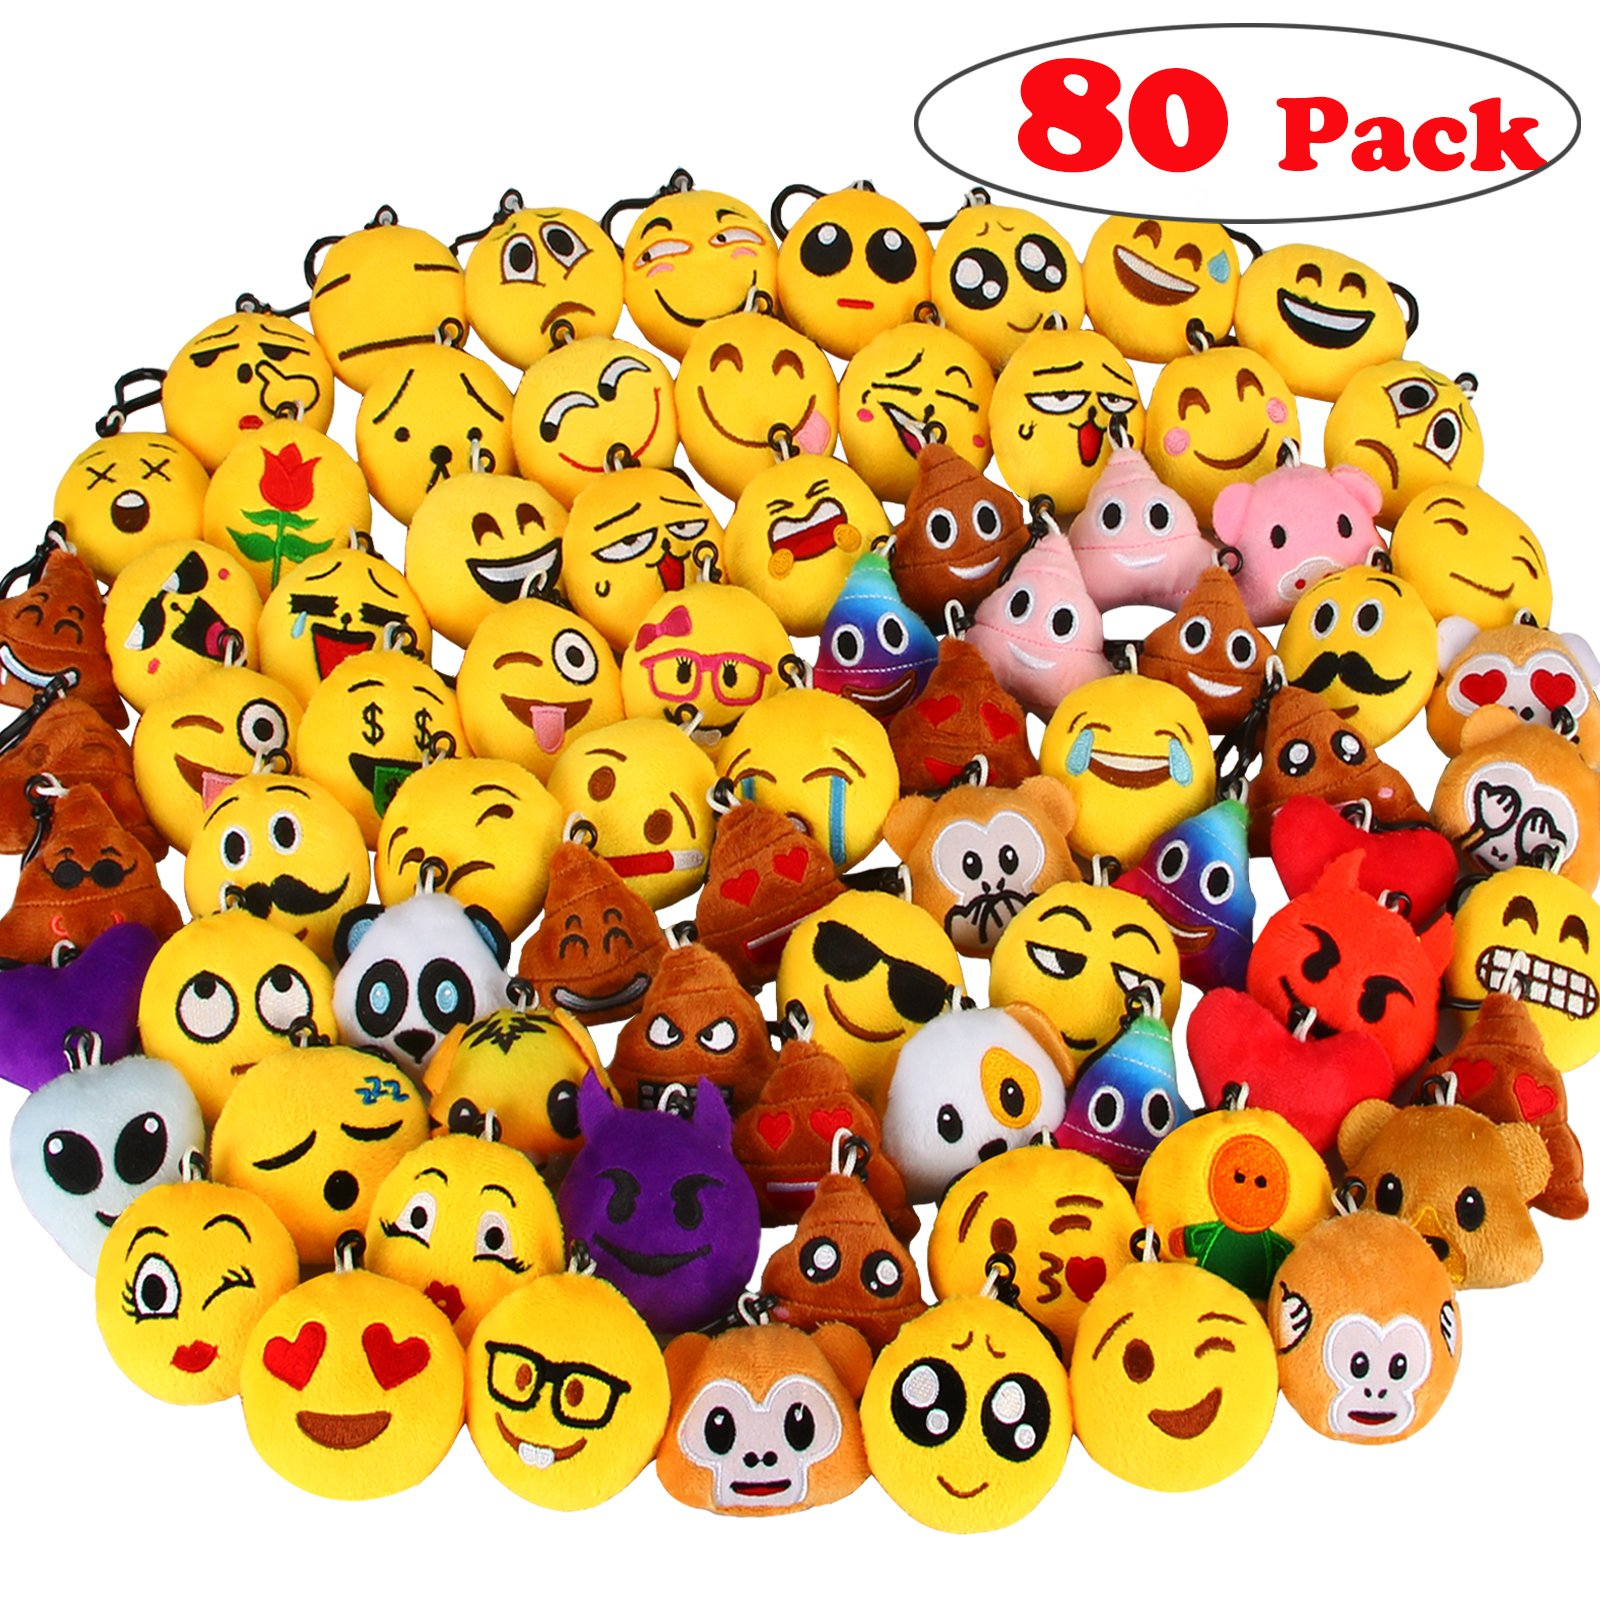 Dreampark 80 Pack Mini Emoji Keychain Plush, Party Favors for Kids, Christmas / Birthday Party Supplies, Emoticon Gifts Toys Carnival Prizes for Kids 2'' Set of 80 by Dreampark